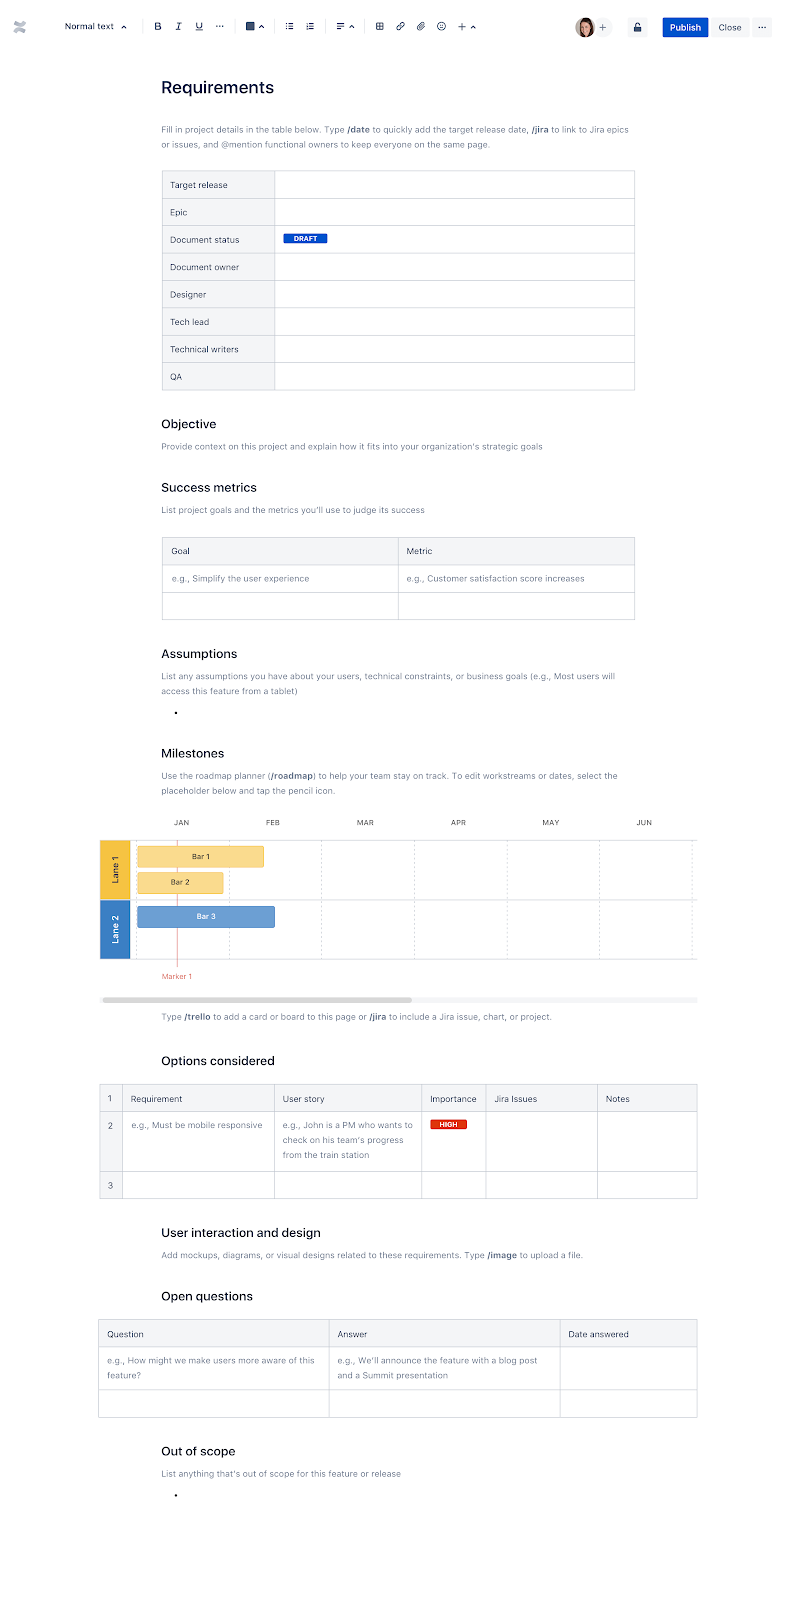 Templates—How to write an effective product requirements document